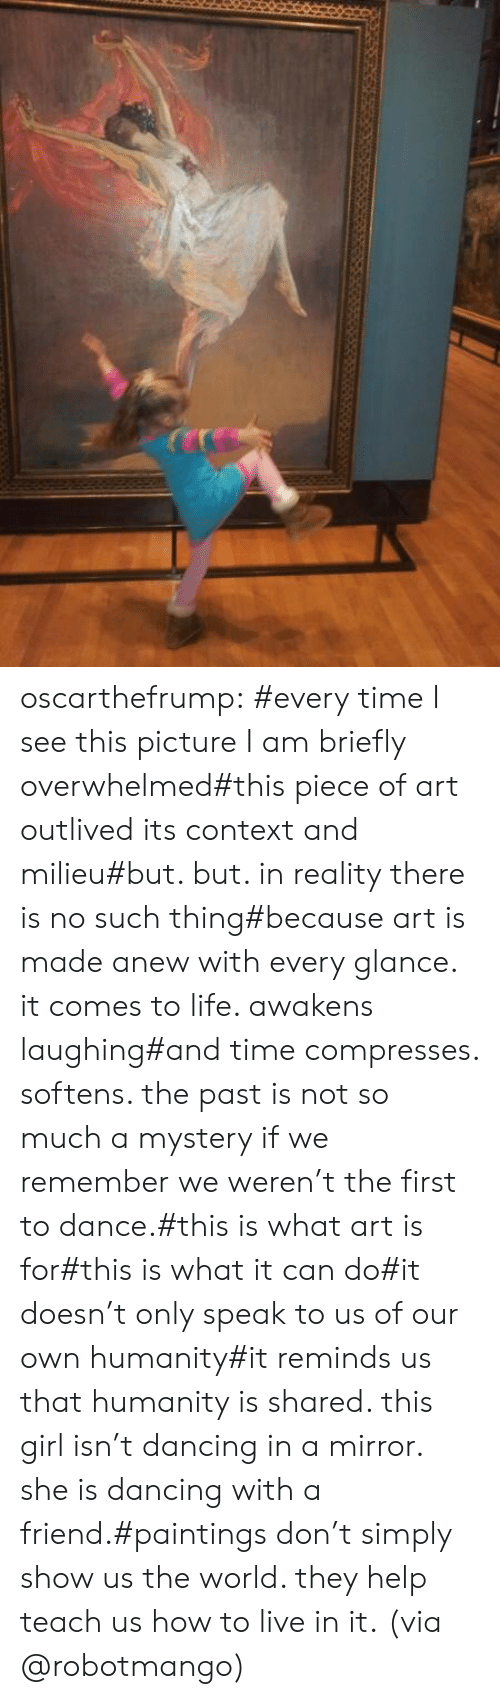 Dancing, Life, and Paintings: oscarthefrump: #every time I see this picture I am briefly overwhelmed#this piece of art outlived its context and milieu#but. but. in reality there is no such thing#because art is made anew with every glance. it comes to life. awakens laughing#and time compresses. softens. the past is not so much a mystery if we remember we weren't the first to dance.#this is what art is for#this is what it can do#it doesn't only speak to us of our own humanity#it reminds us that humanity is shared. this girl isn't dancing in a mirror. she is dancing with a friend.#paintings don't simply show us the world. they help teach us how to live in it.  (via @robotmango)